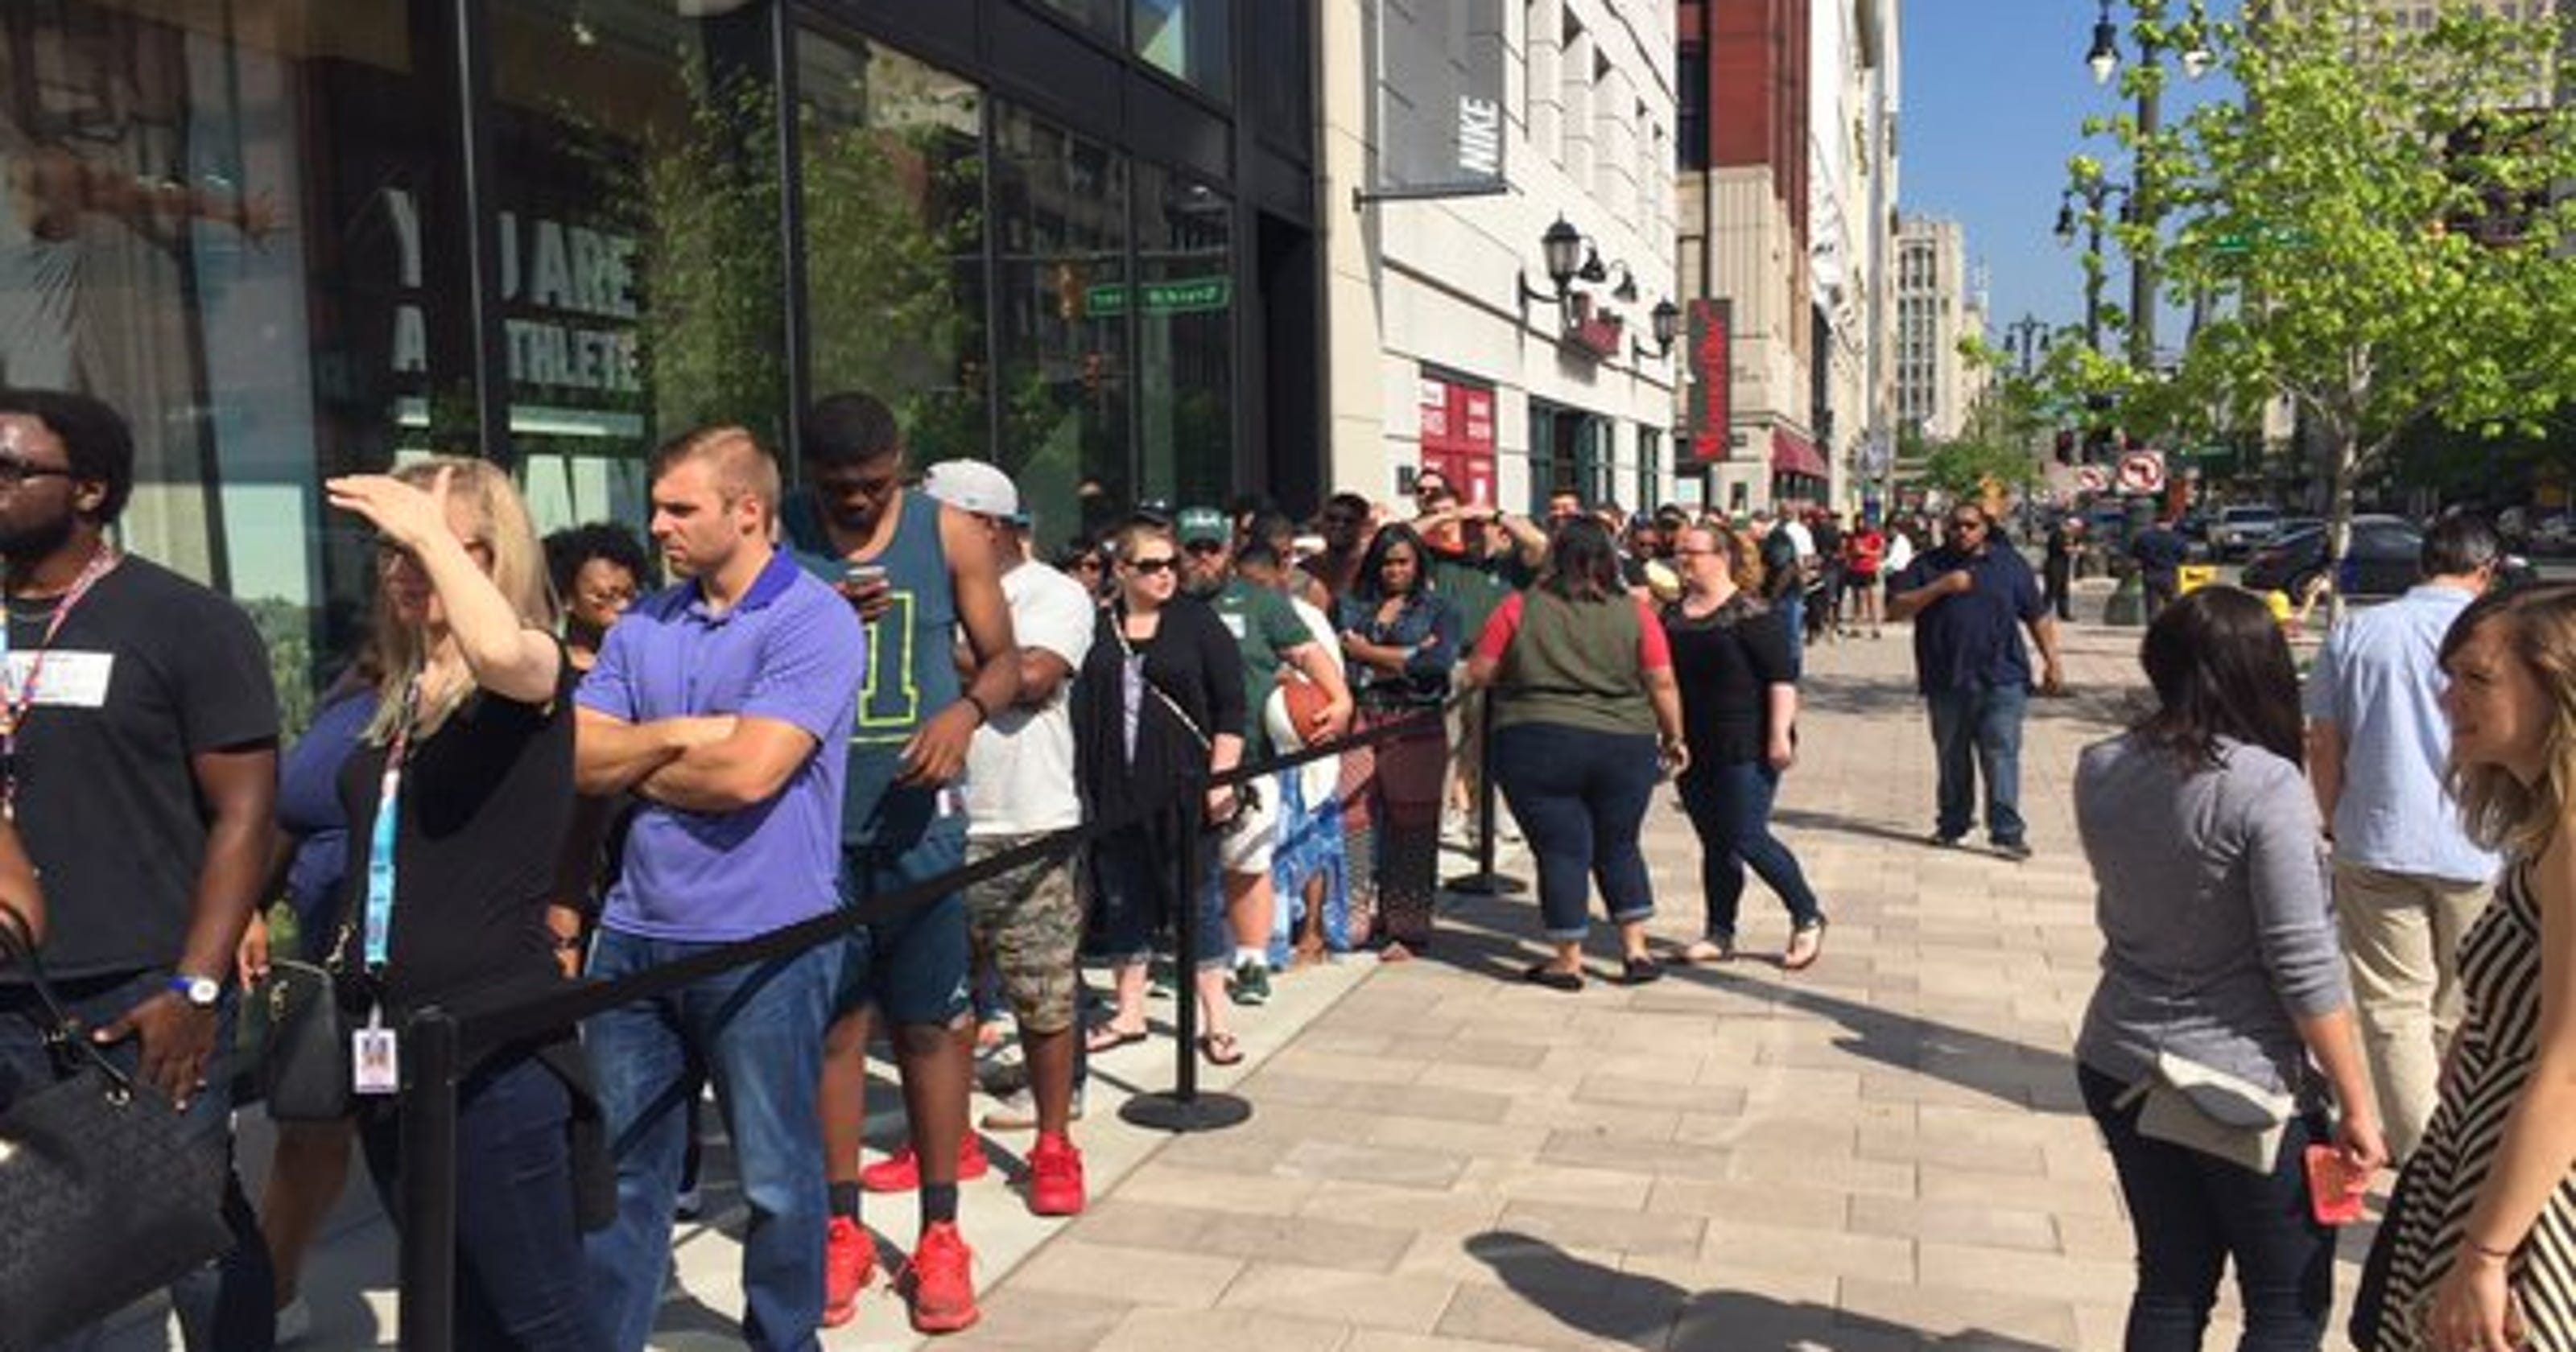 Crowds cheer new Detroit Nike store as community win 512682ce82